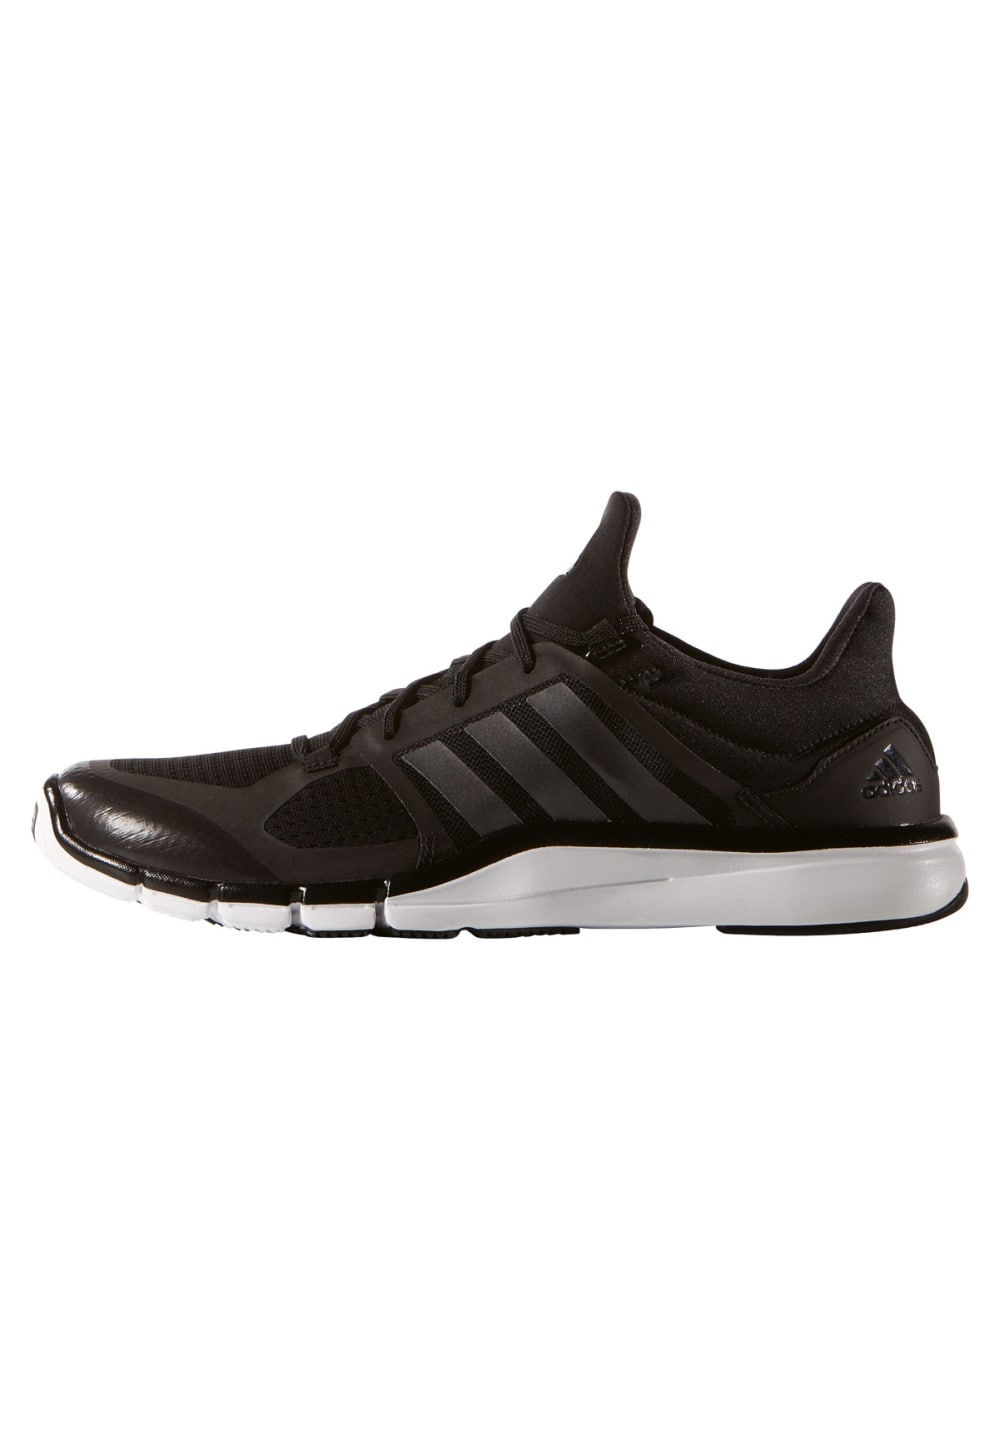 on sale 1a589 05df5 Fitness Pour 21run Adidas Chaussures Adipure 360 3 Femme Noi